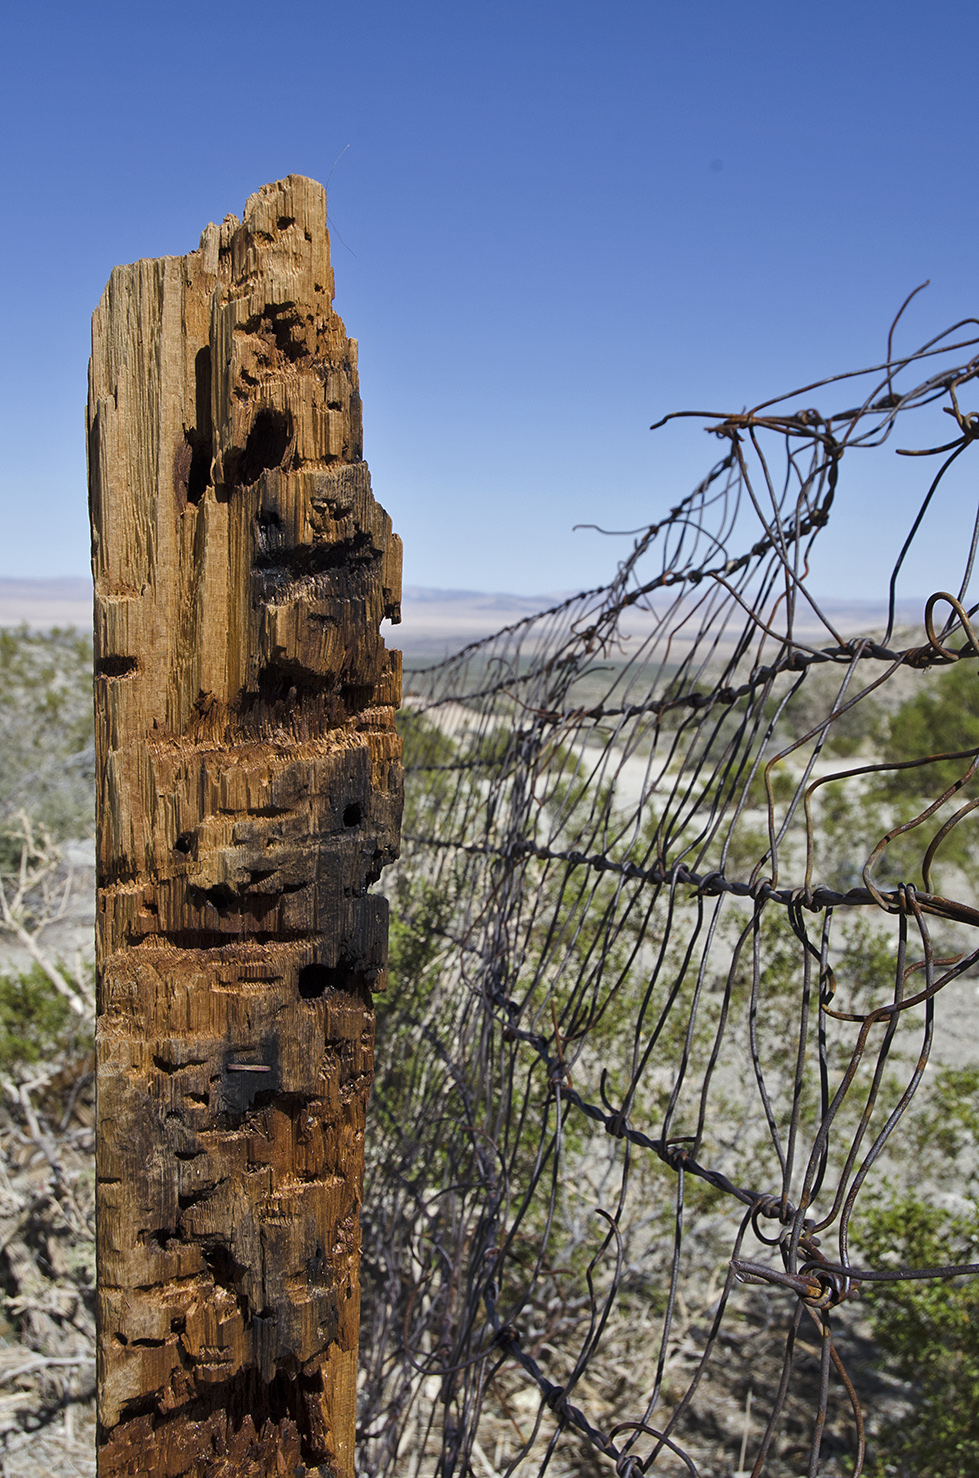 Closeup of a fencepost. Maybe a garden was inside the fence at one time.